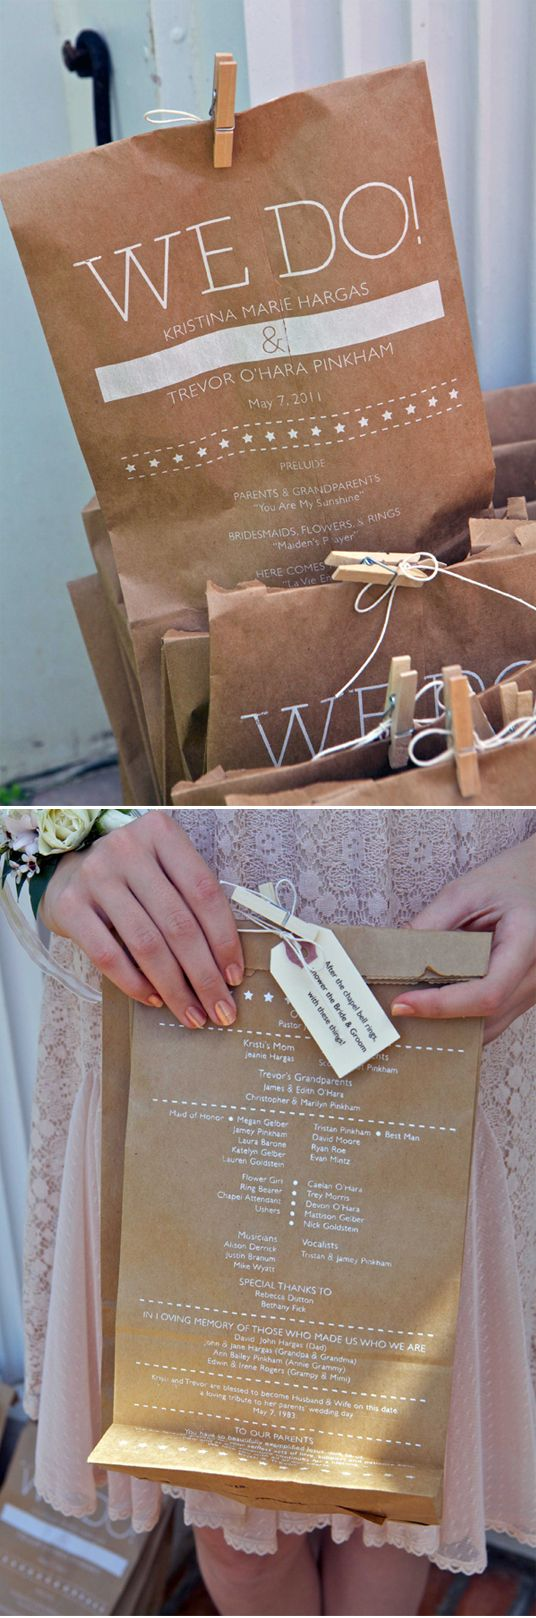 Wedding program printed on brown bags filled with confetti to toss at the married couple.